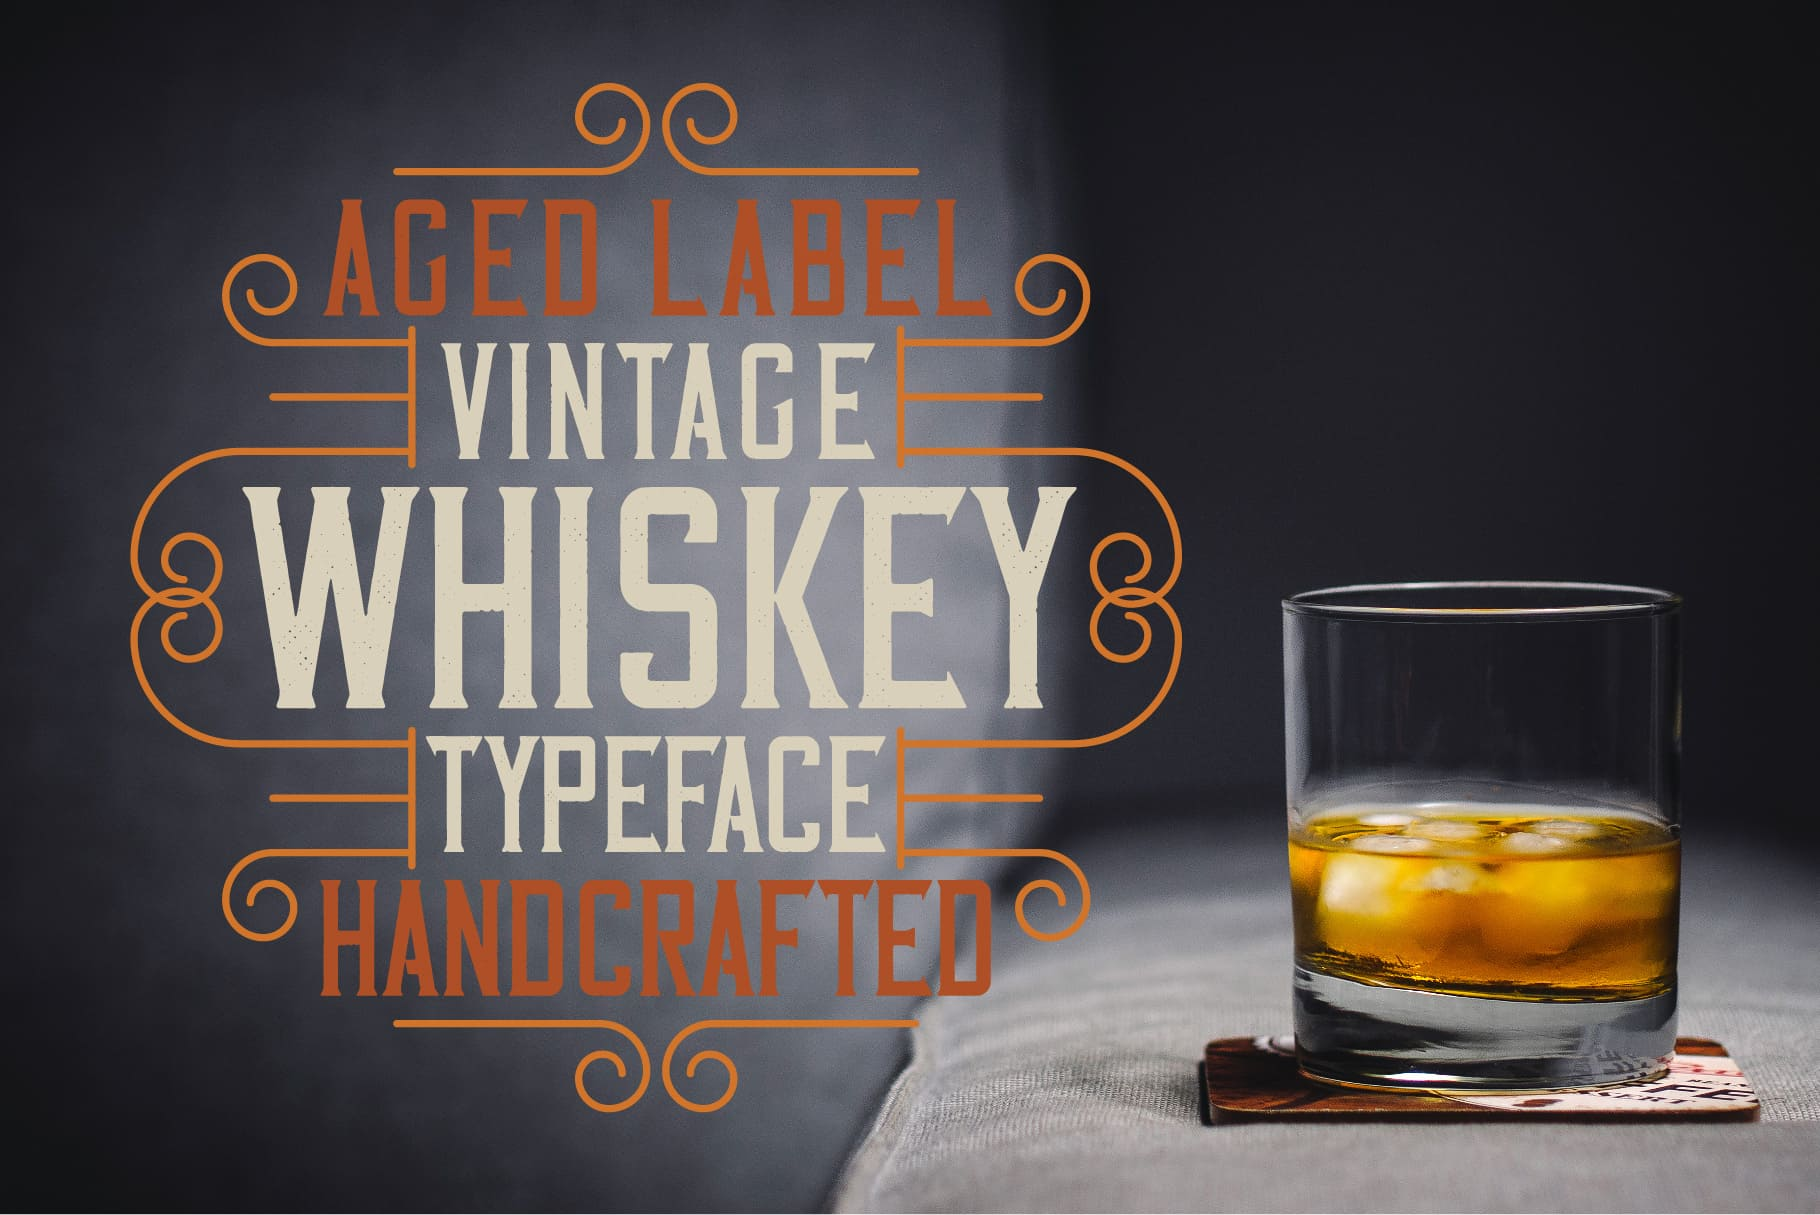 A vibrant and challenging poster with a glass of aged whiskey and multicolored lettering.